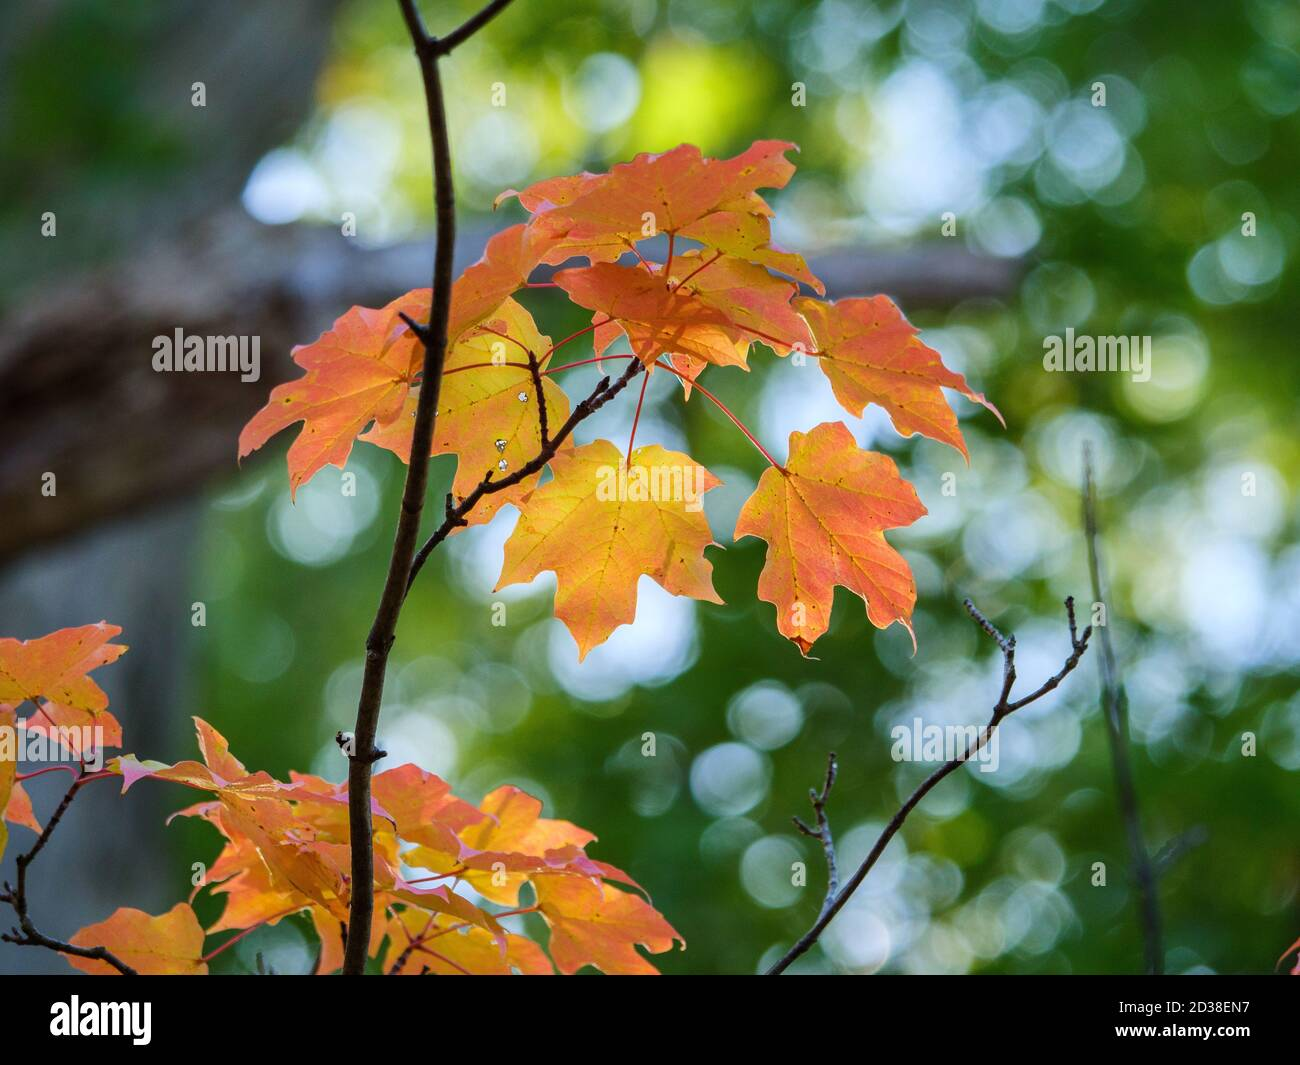 sugar-maple-leaves-thatcher-woods-forest